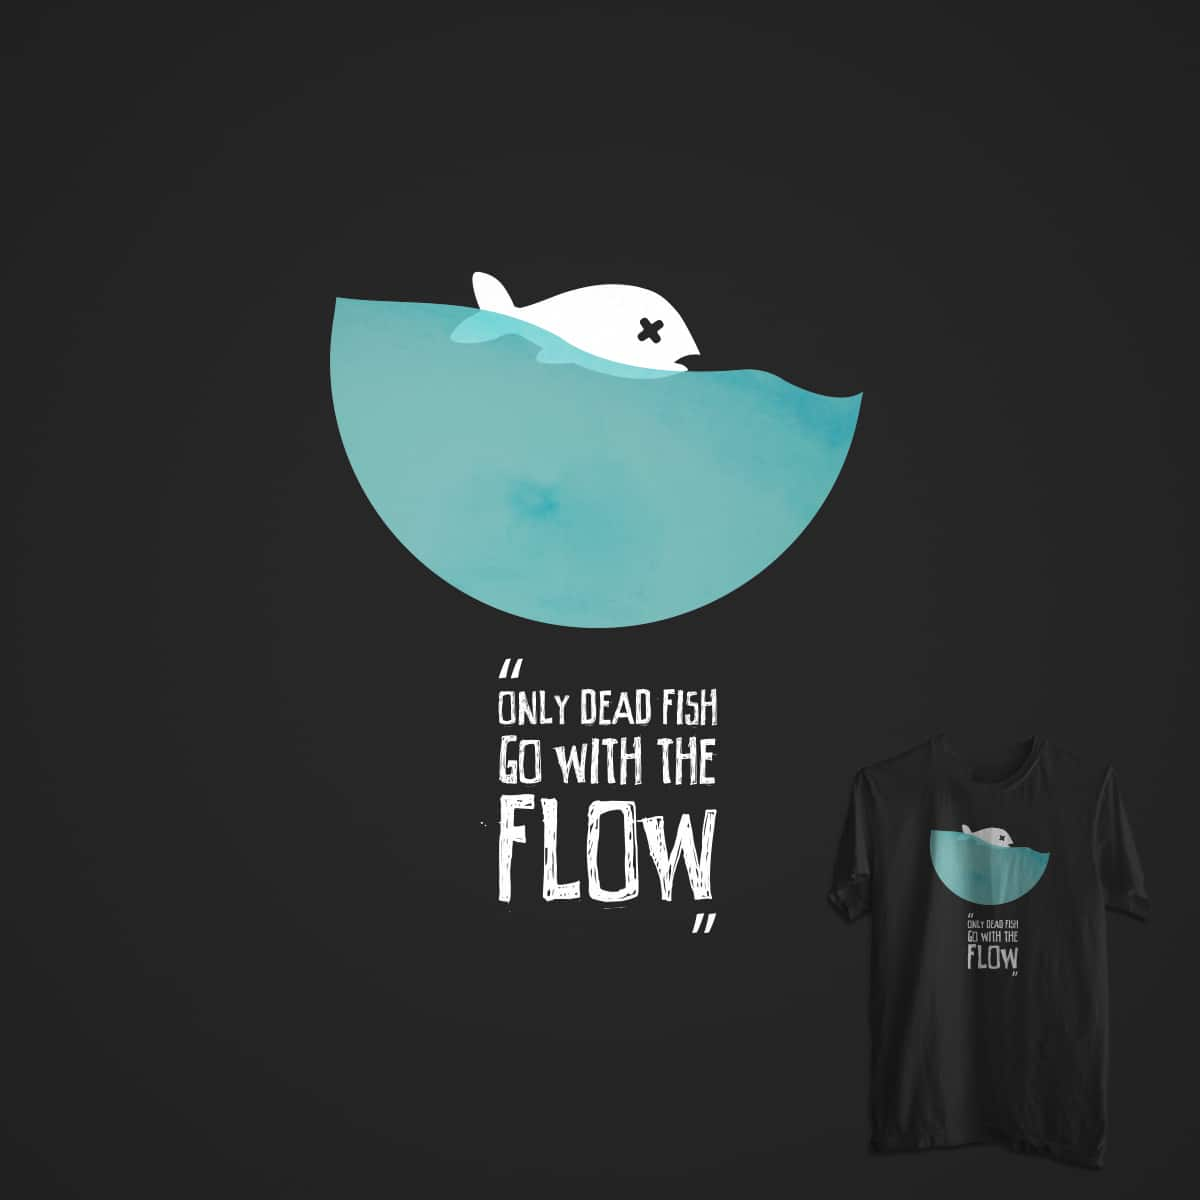 Go With The Flow Quotes Score Only Dead Fish Go With The Flowandrebarros On Threadless